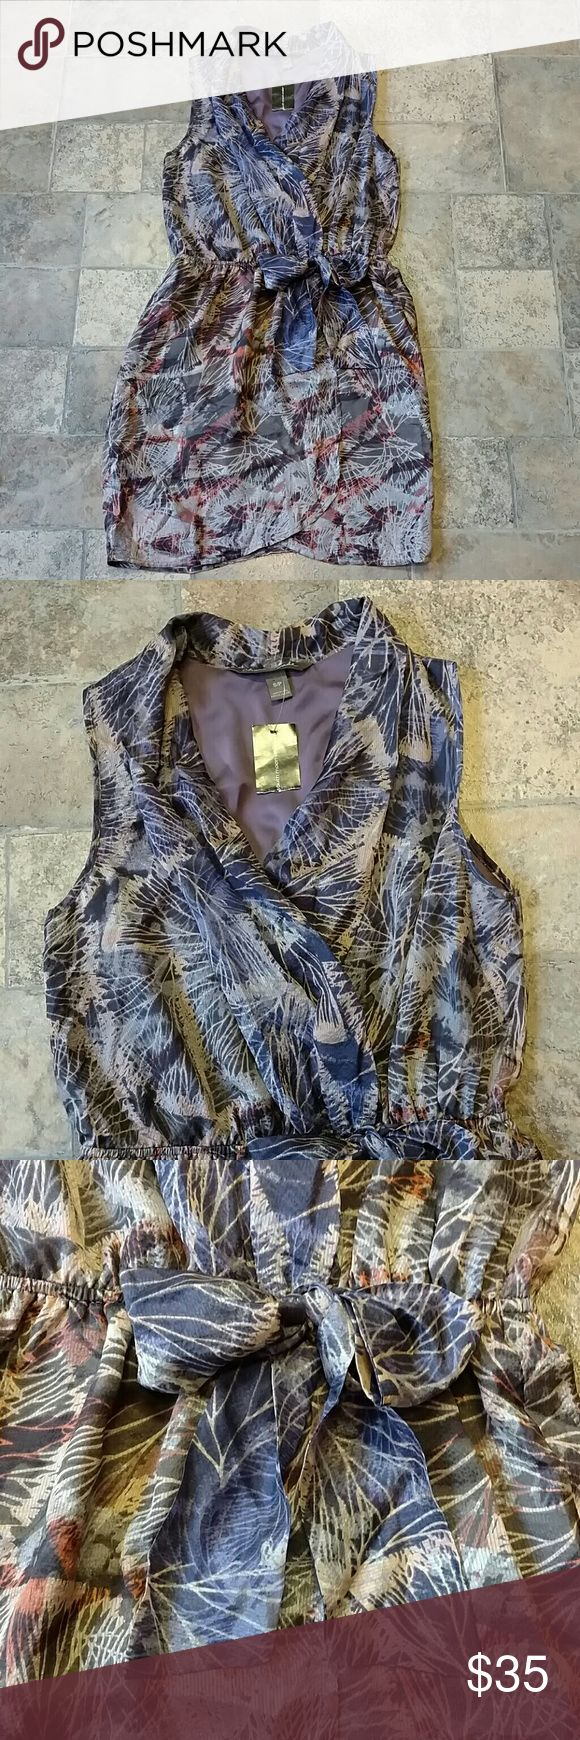 "BNWT! Charlie Jade gorgeous silk dress * Brand New * Charlie Jade * South Moon Under * Gorgeous silk wrap dress * Thin elastic band at waist * Size S/P * Measures 17"" across bust, but is a little forgiving due to the wrap front * Length is 34"" * Body: 100% silk * *Lining: 100% polyester * Any questions, just ask! Charlie Jade Dresses"